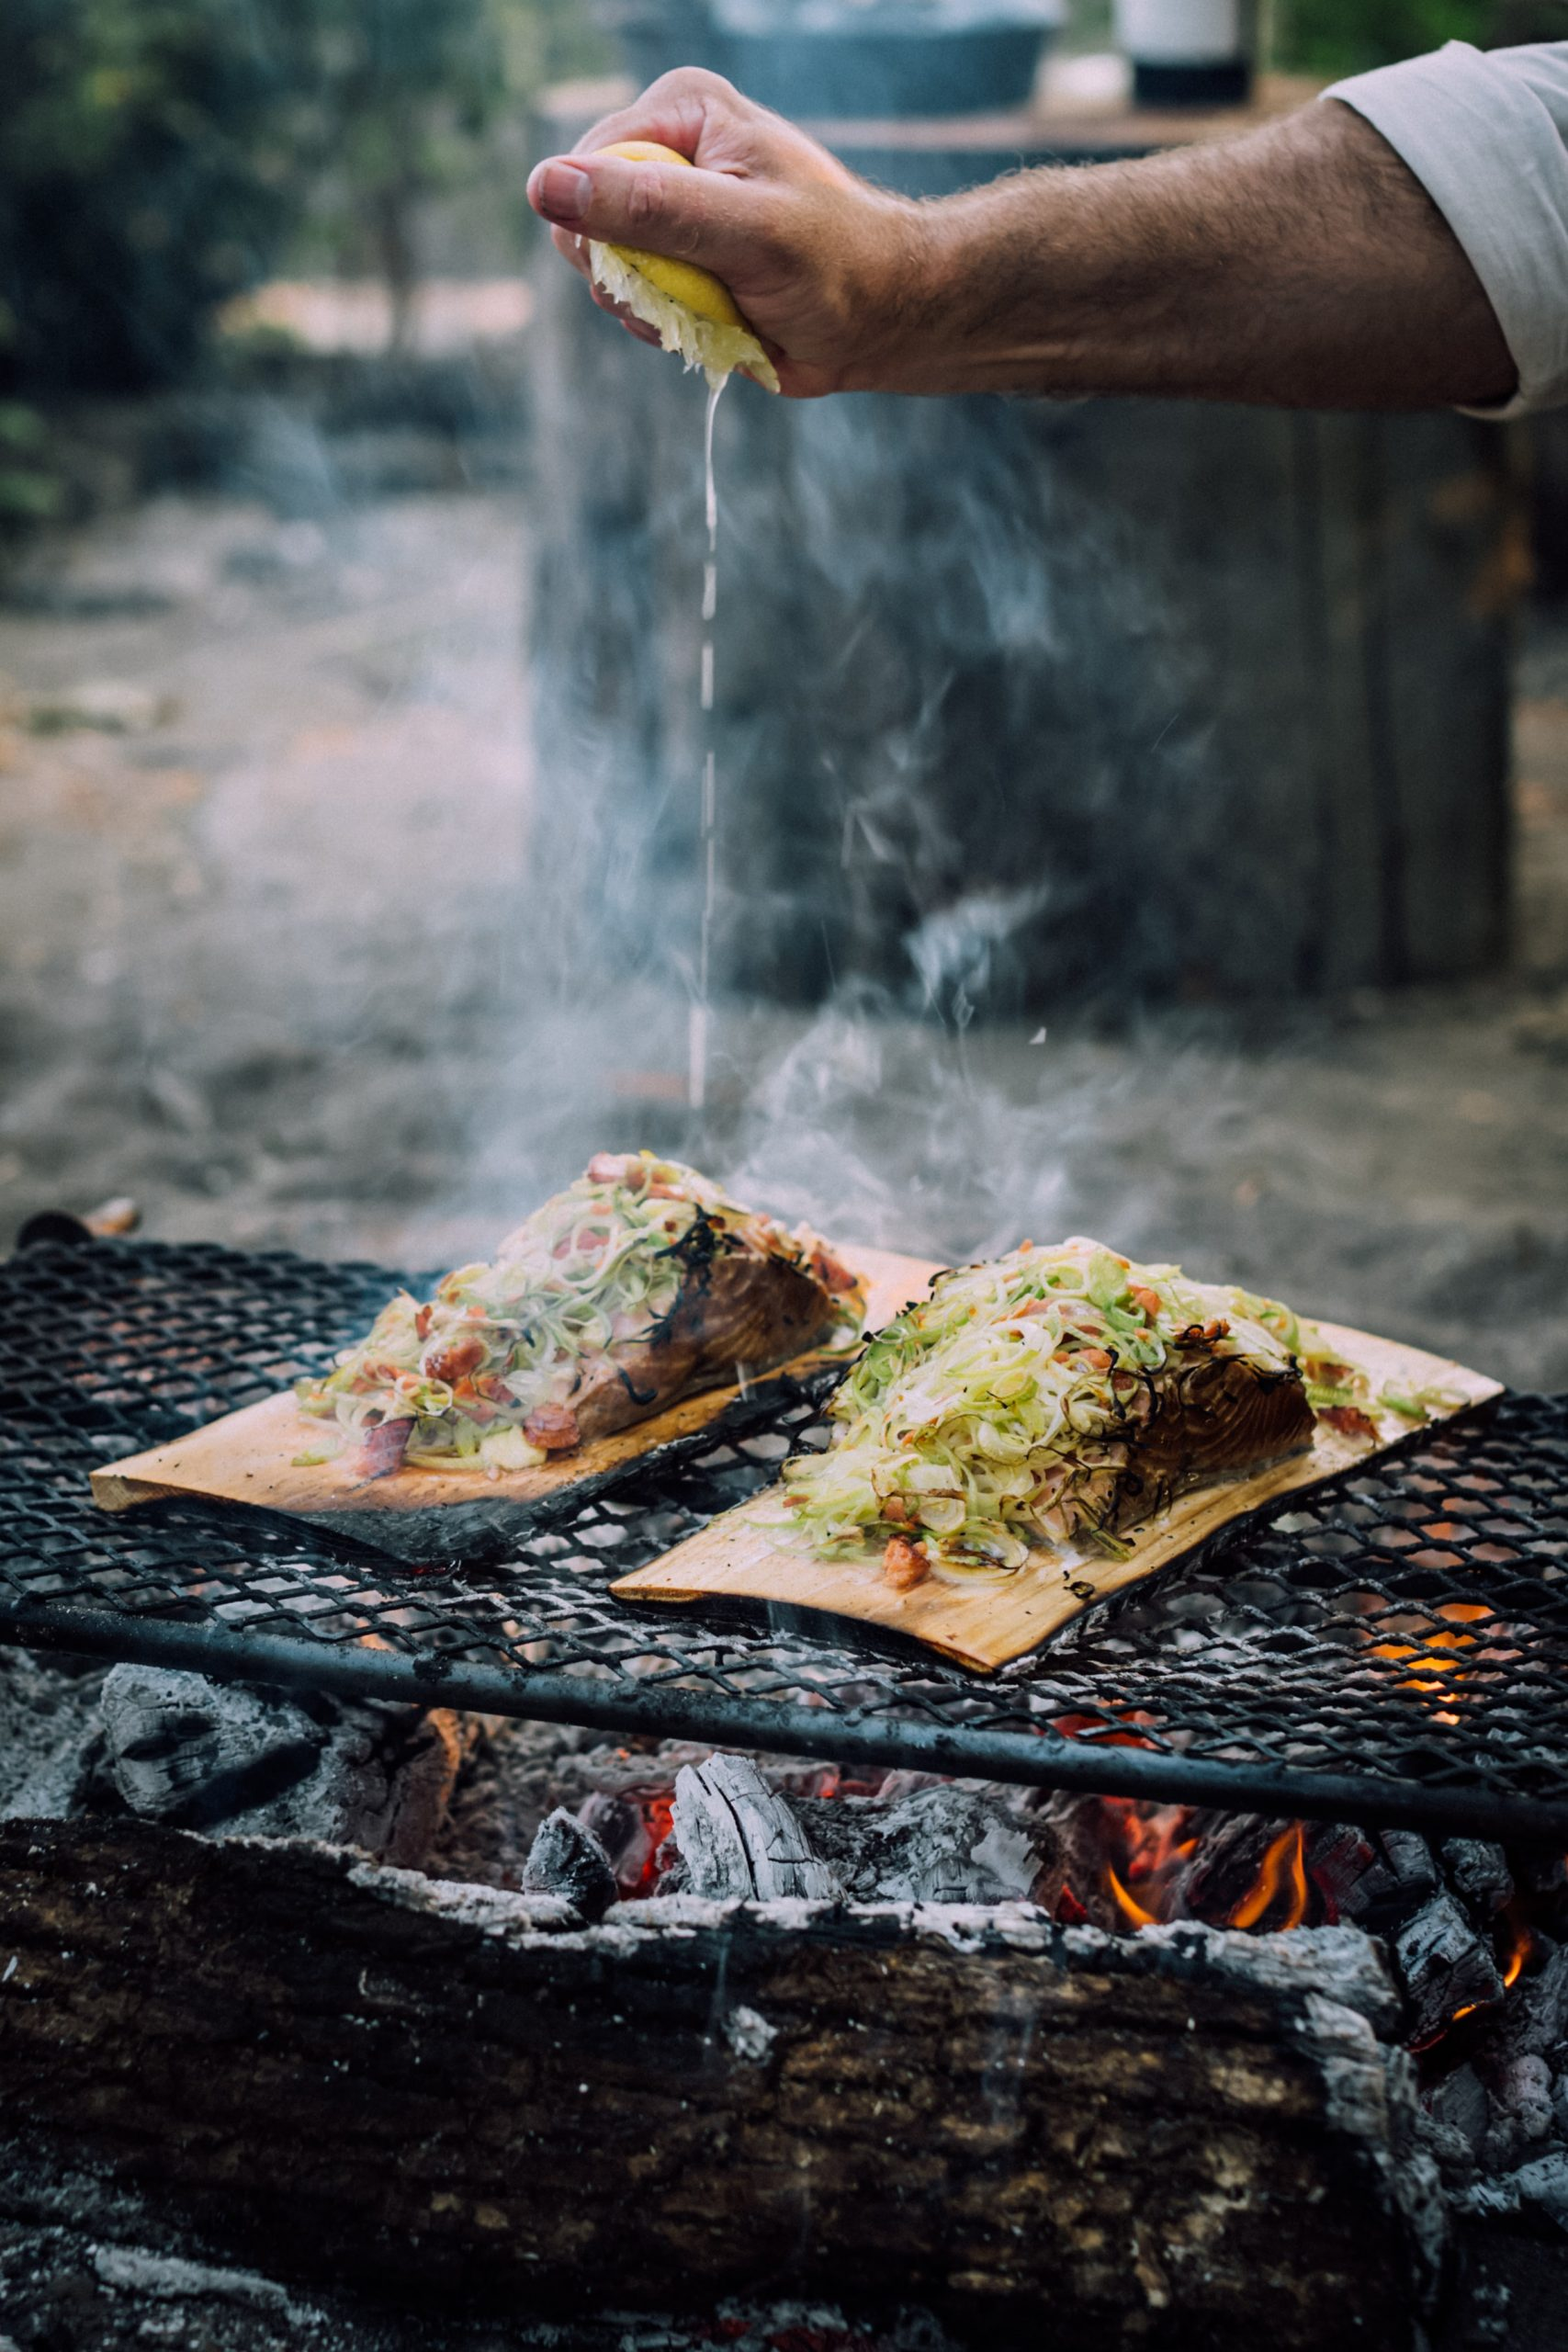 Cedar plank salmon and vegetables cooked over an open fire.